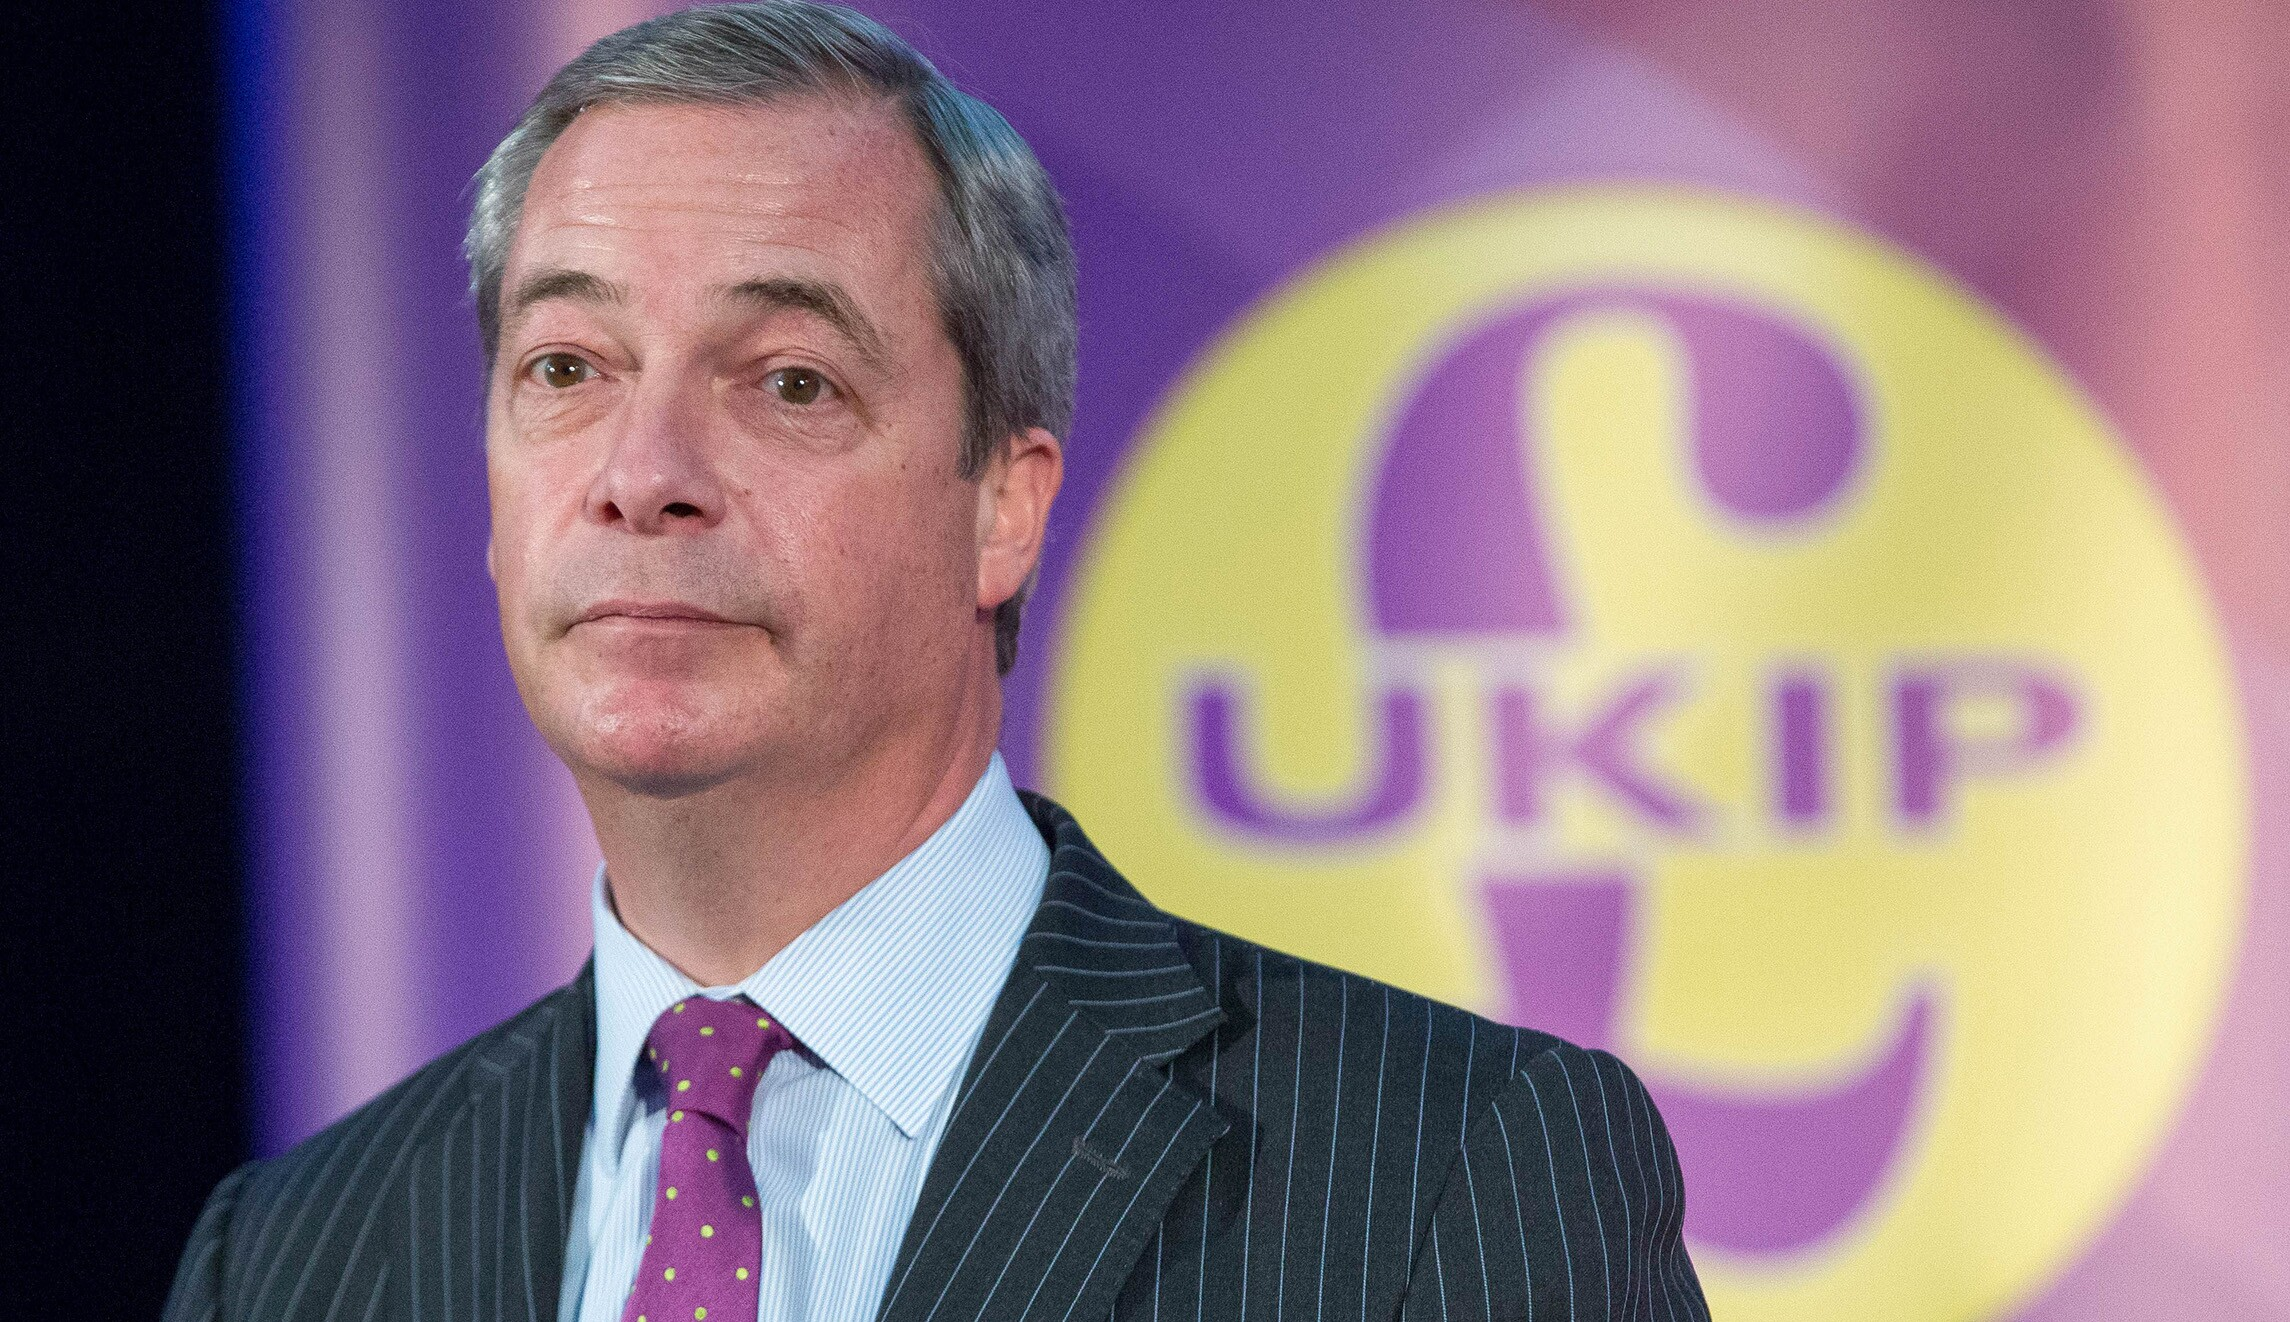 Nigel Farage is a \'person of interest\' in Russia probe: Report